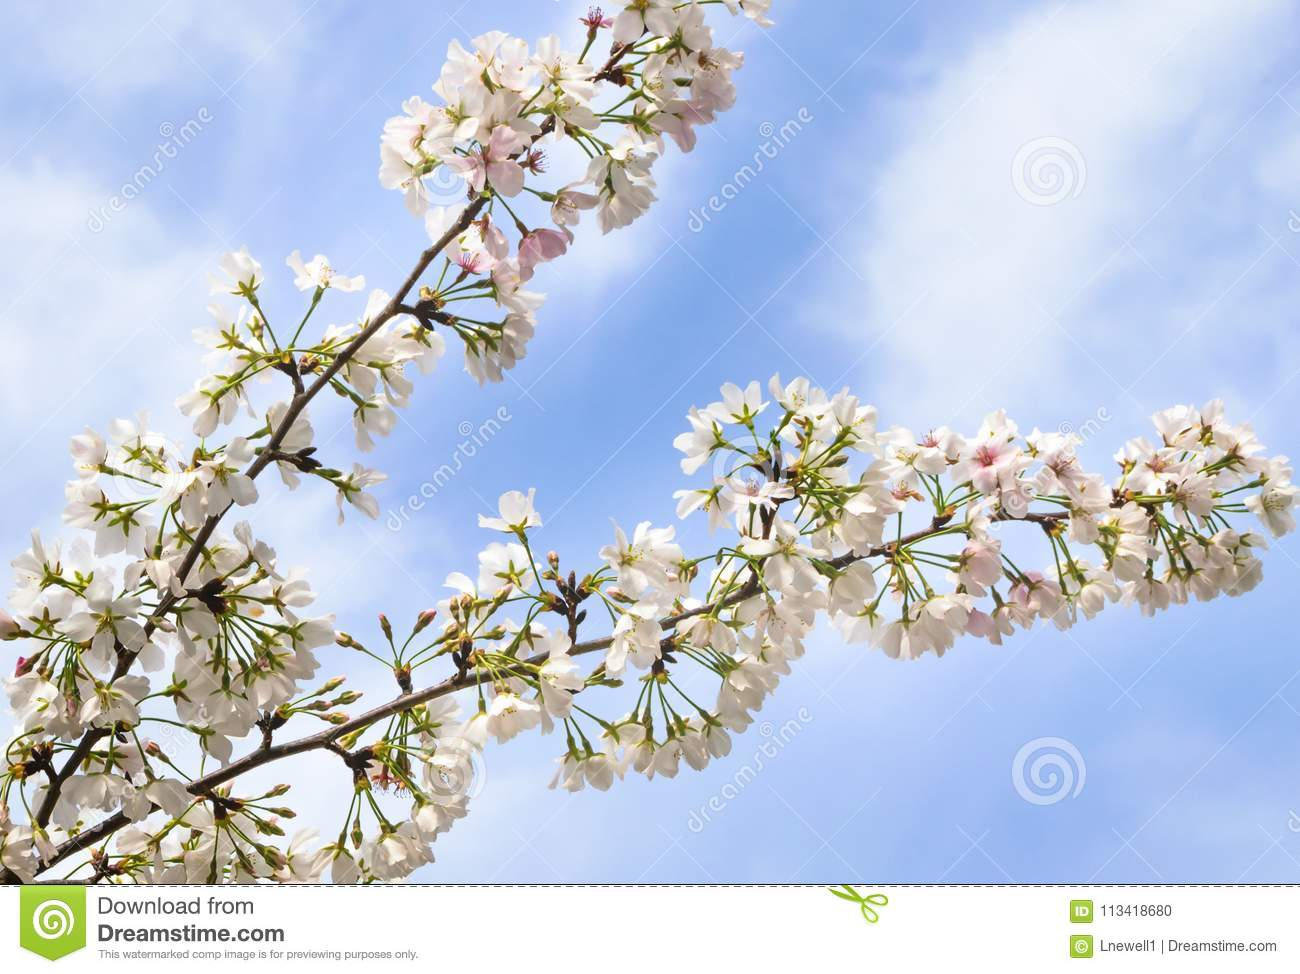 Cherry Blossom Branches In The Clouds Stock Photo Image Of Fluffy